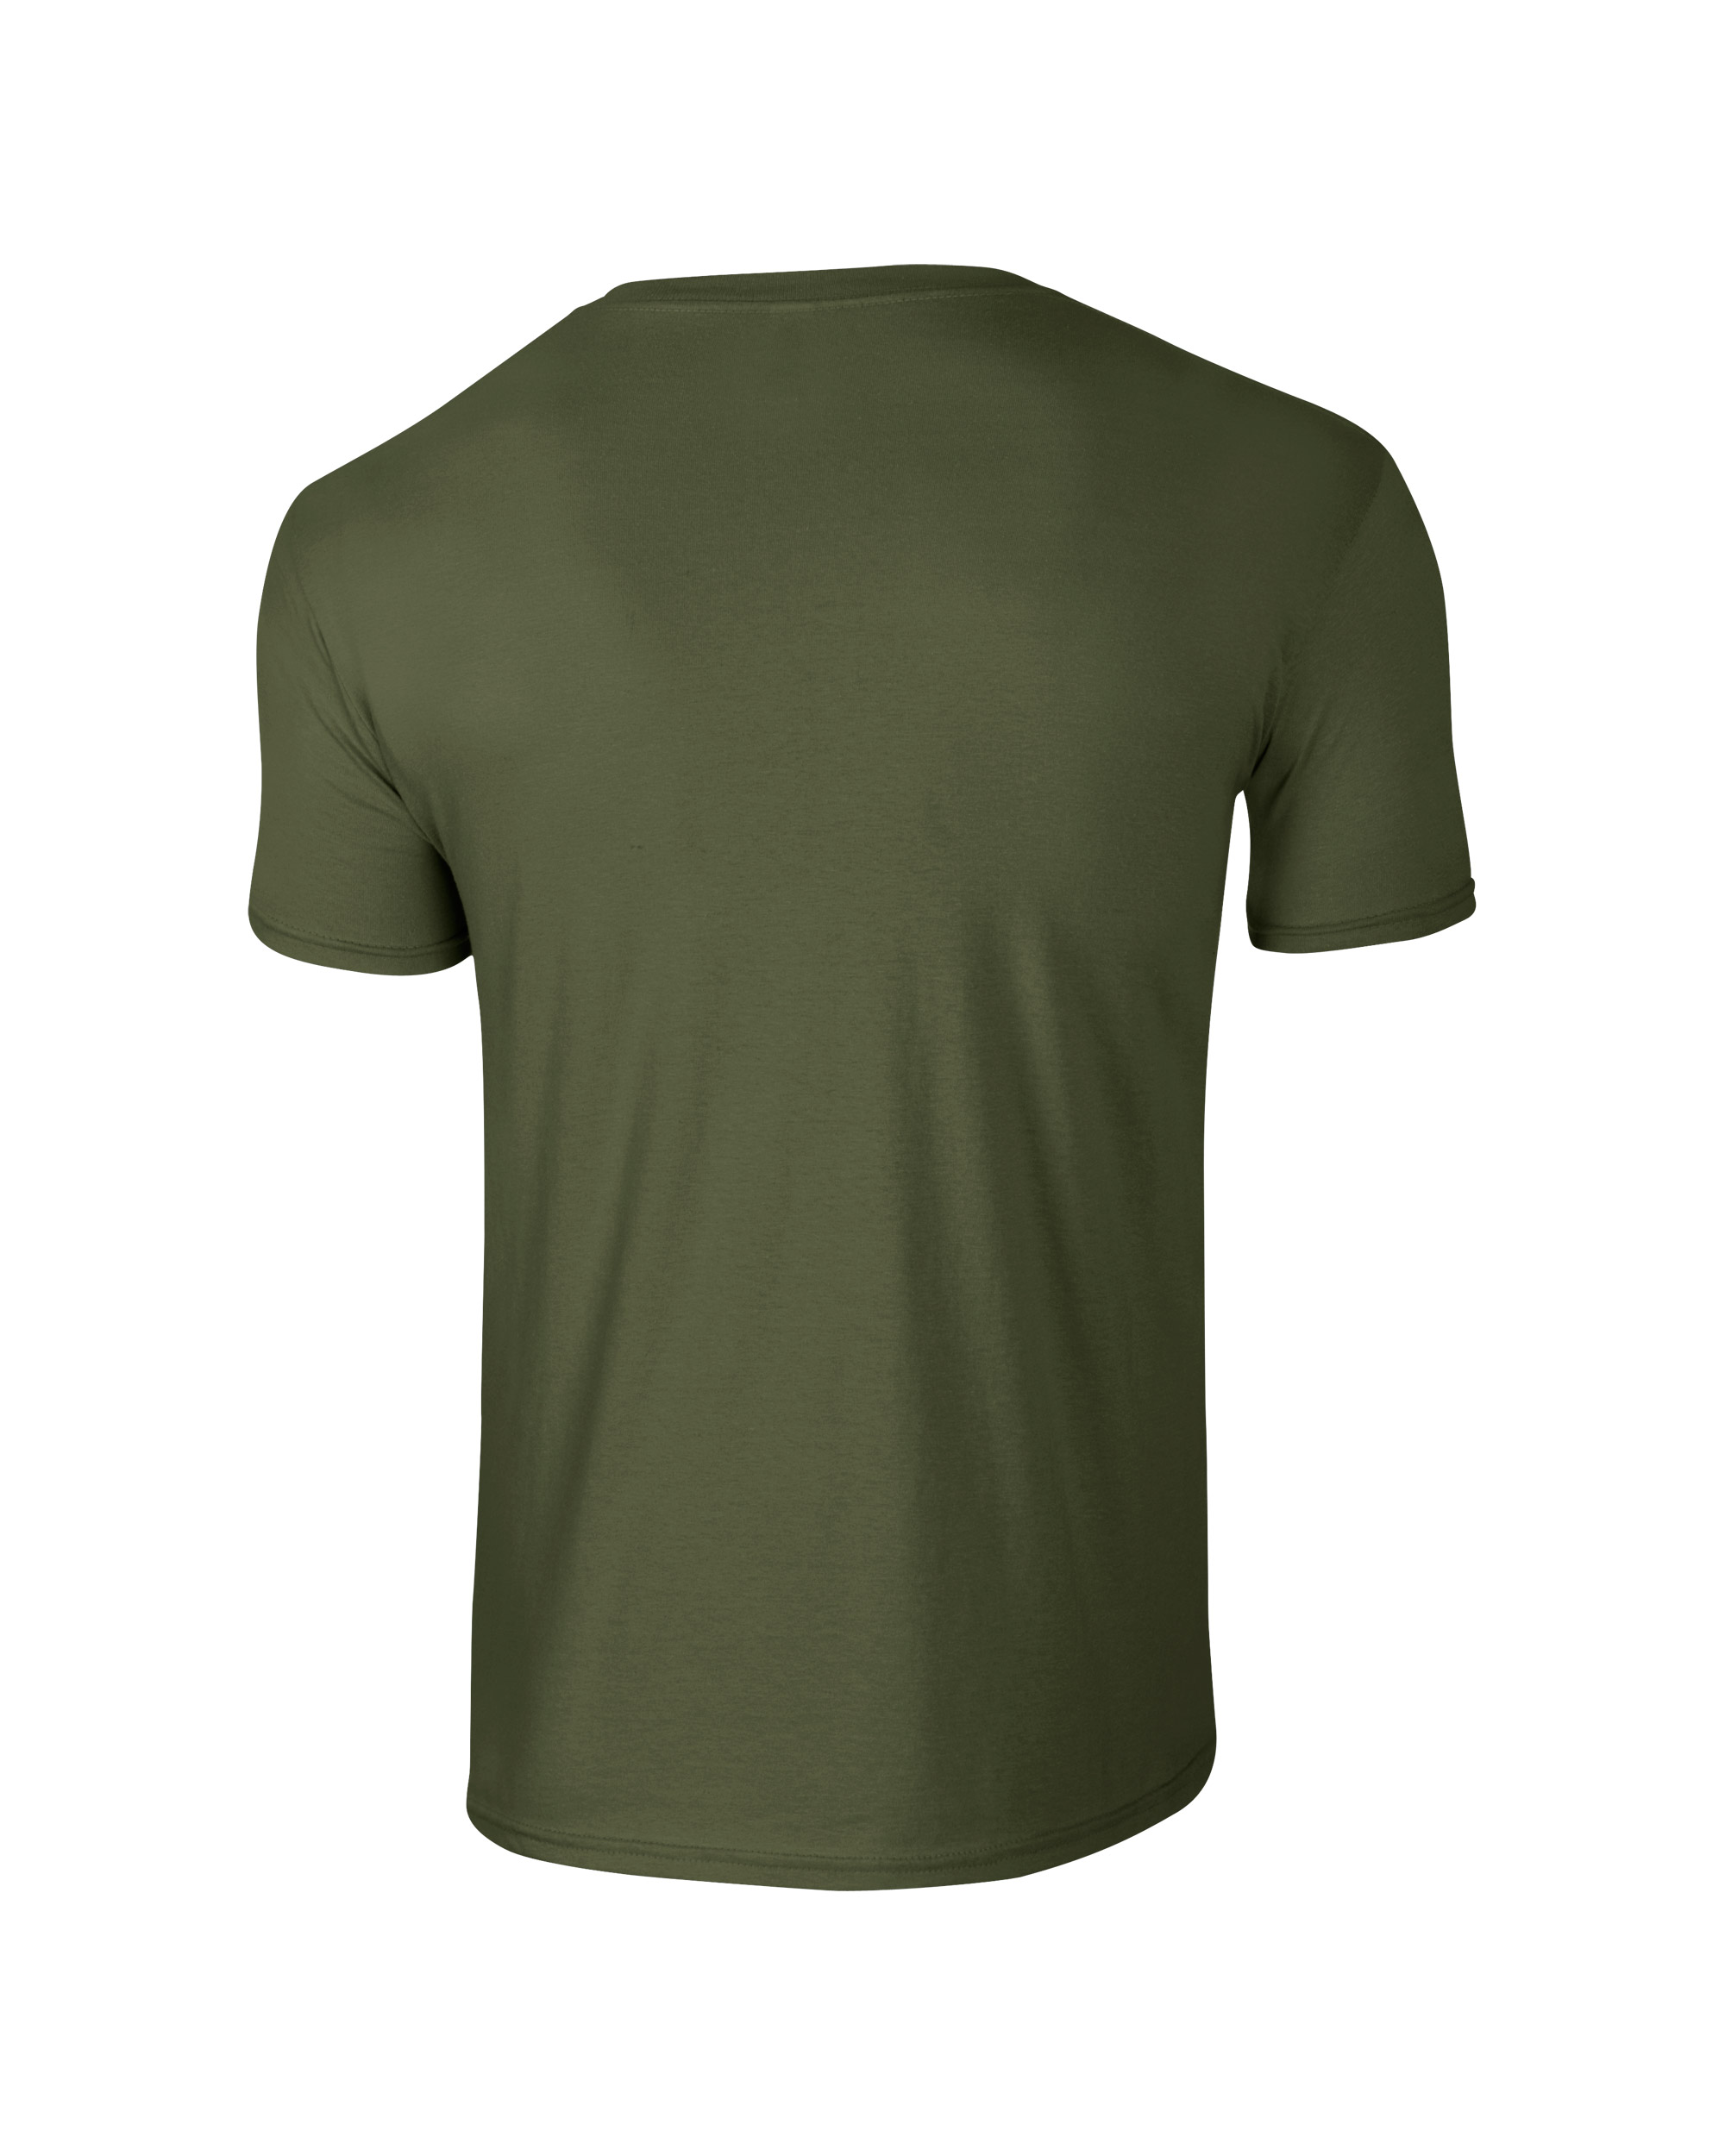 gildan softstyle adult t shirt military green 2xl. Black Bedroom Furniture Sets. Home Design Ideas